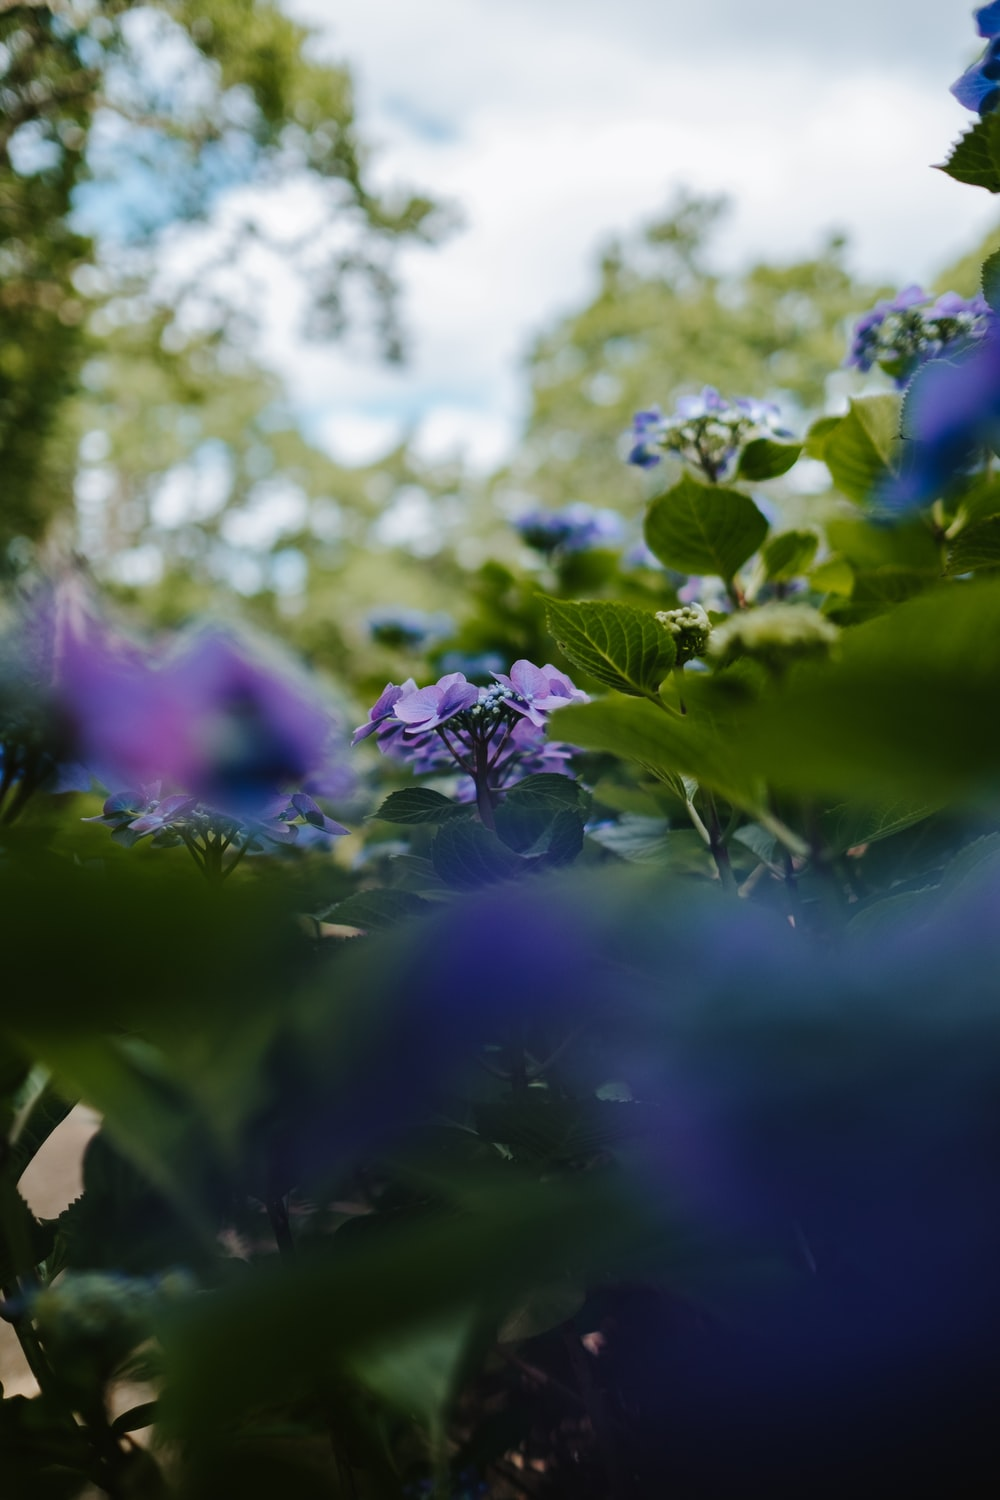 shallow focus photography of green-leafed plant with purple flowers